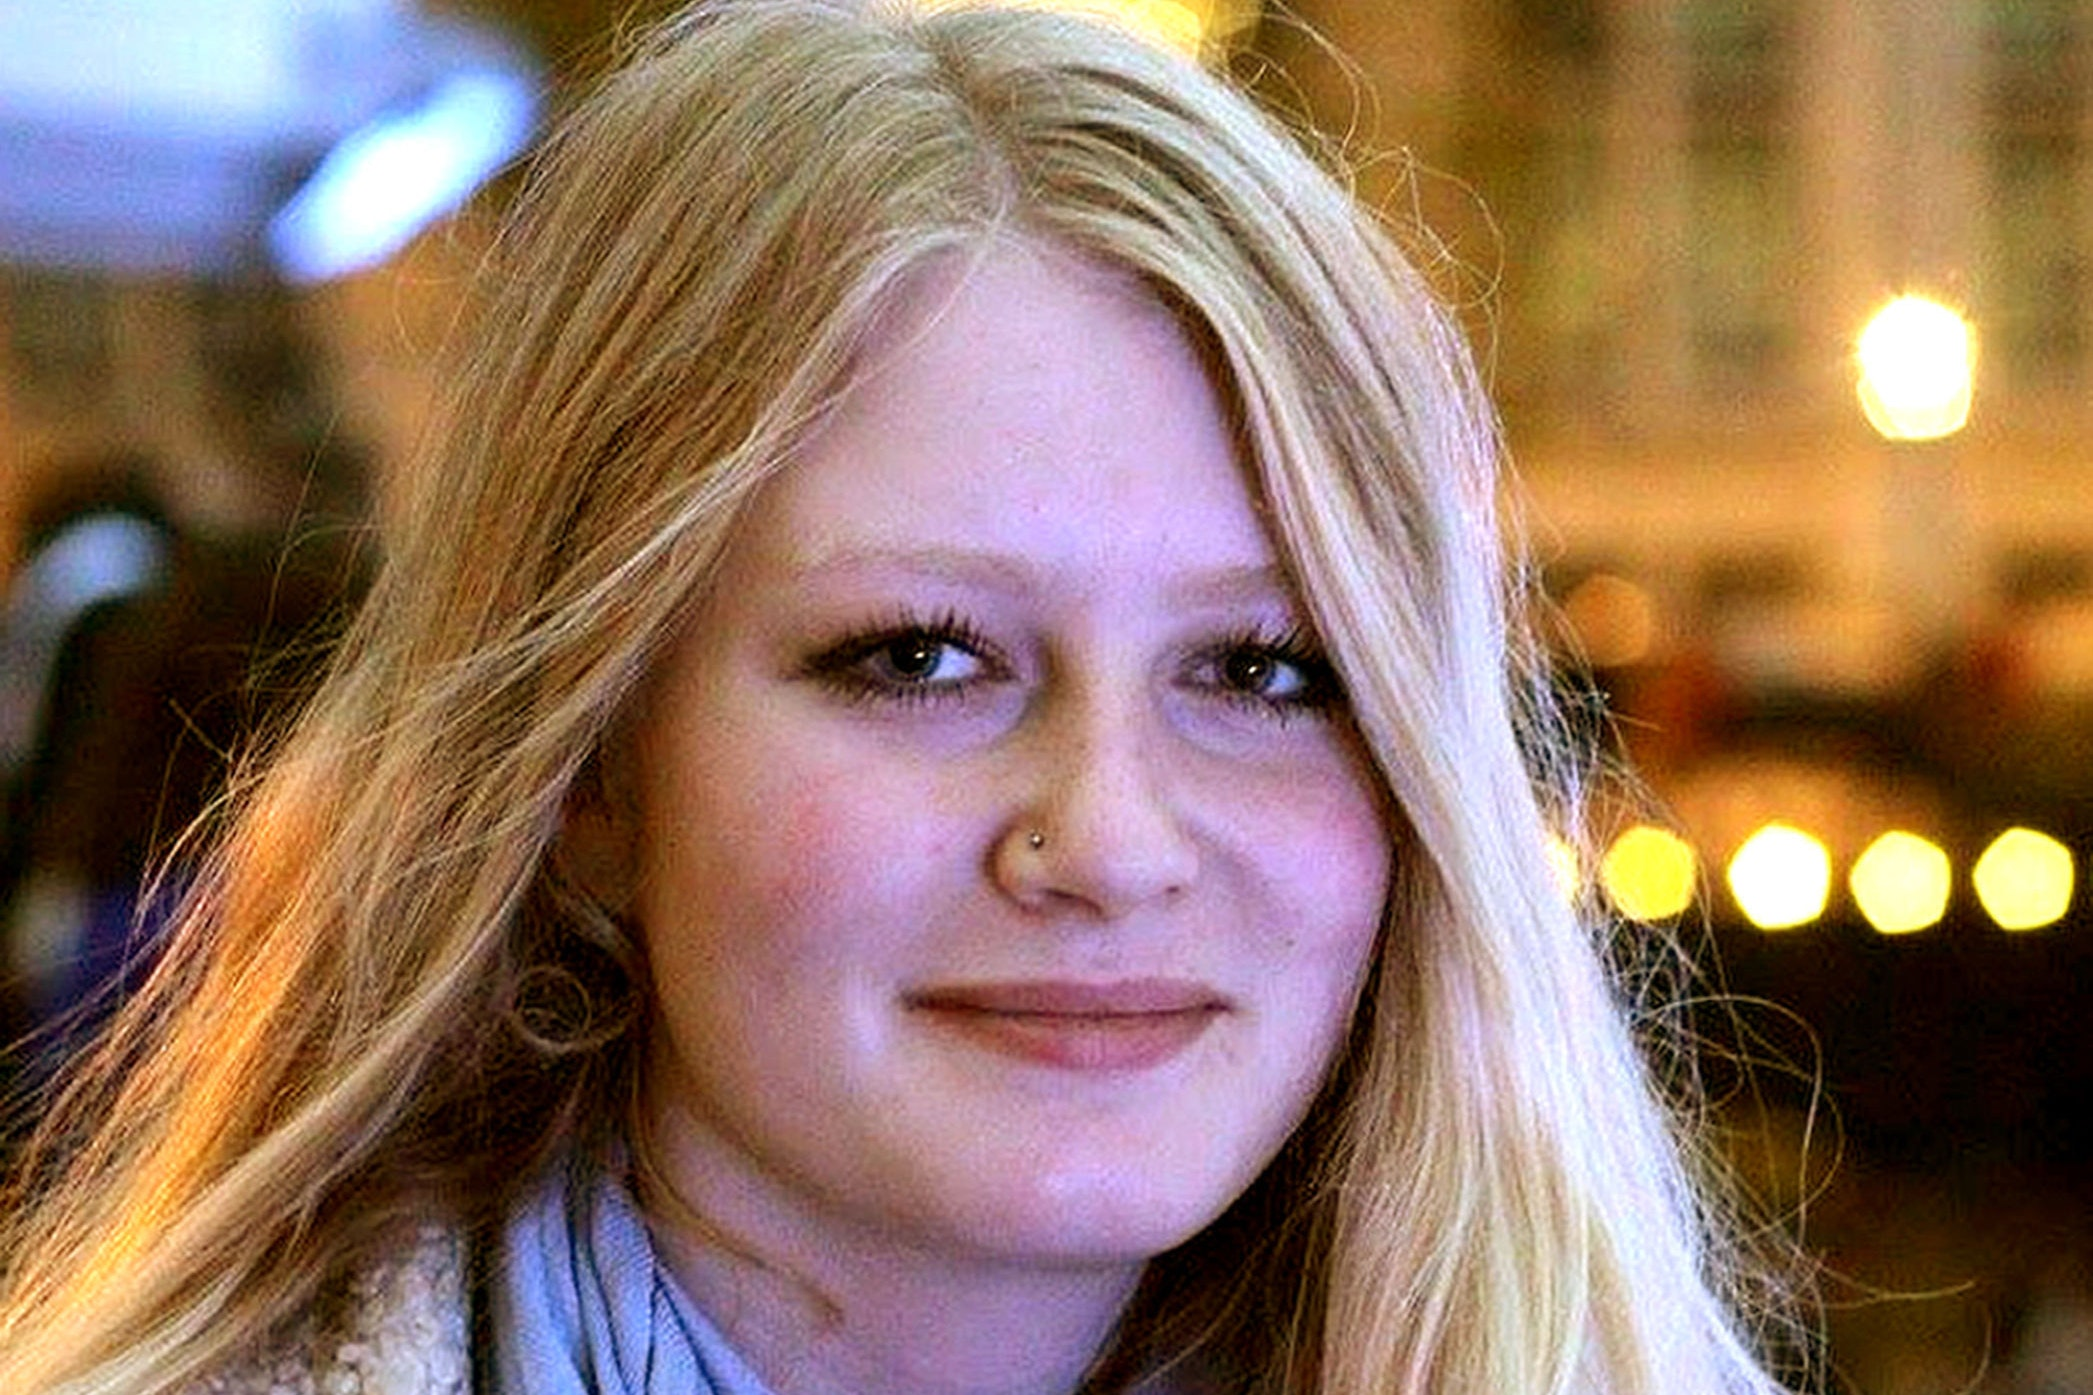 Undated handout file photo issued by Dorset Police of Gaia Pope, who died from hypothermia, an inquest has heard.